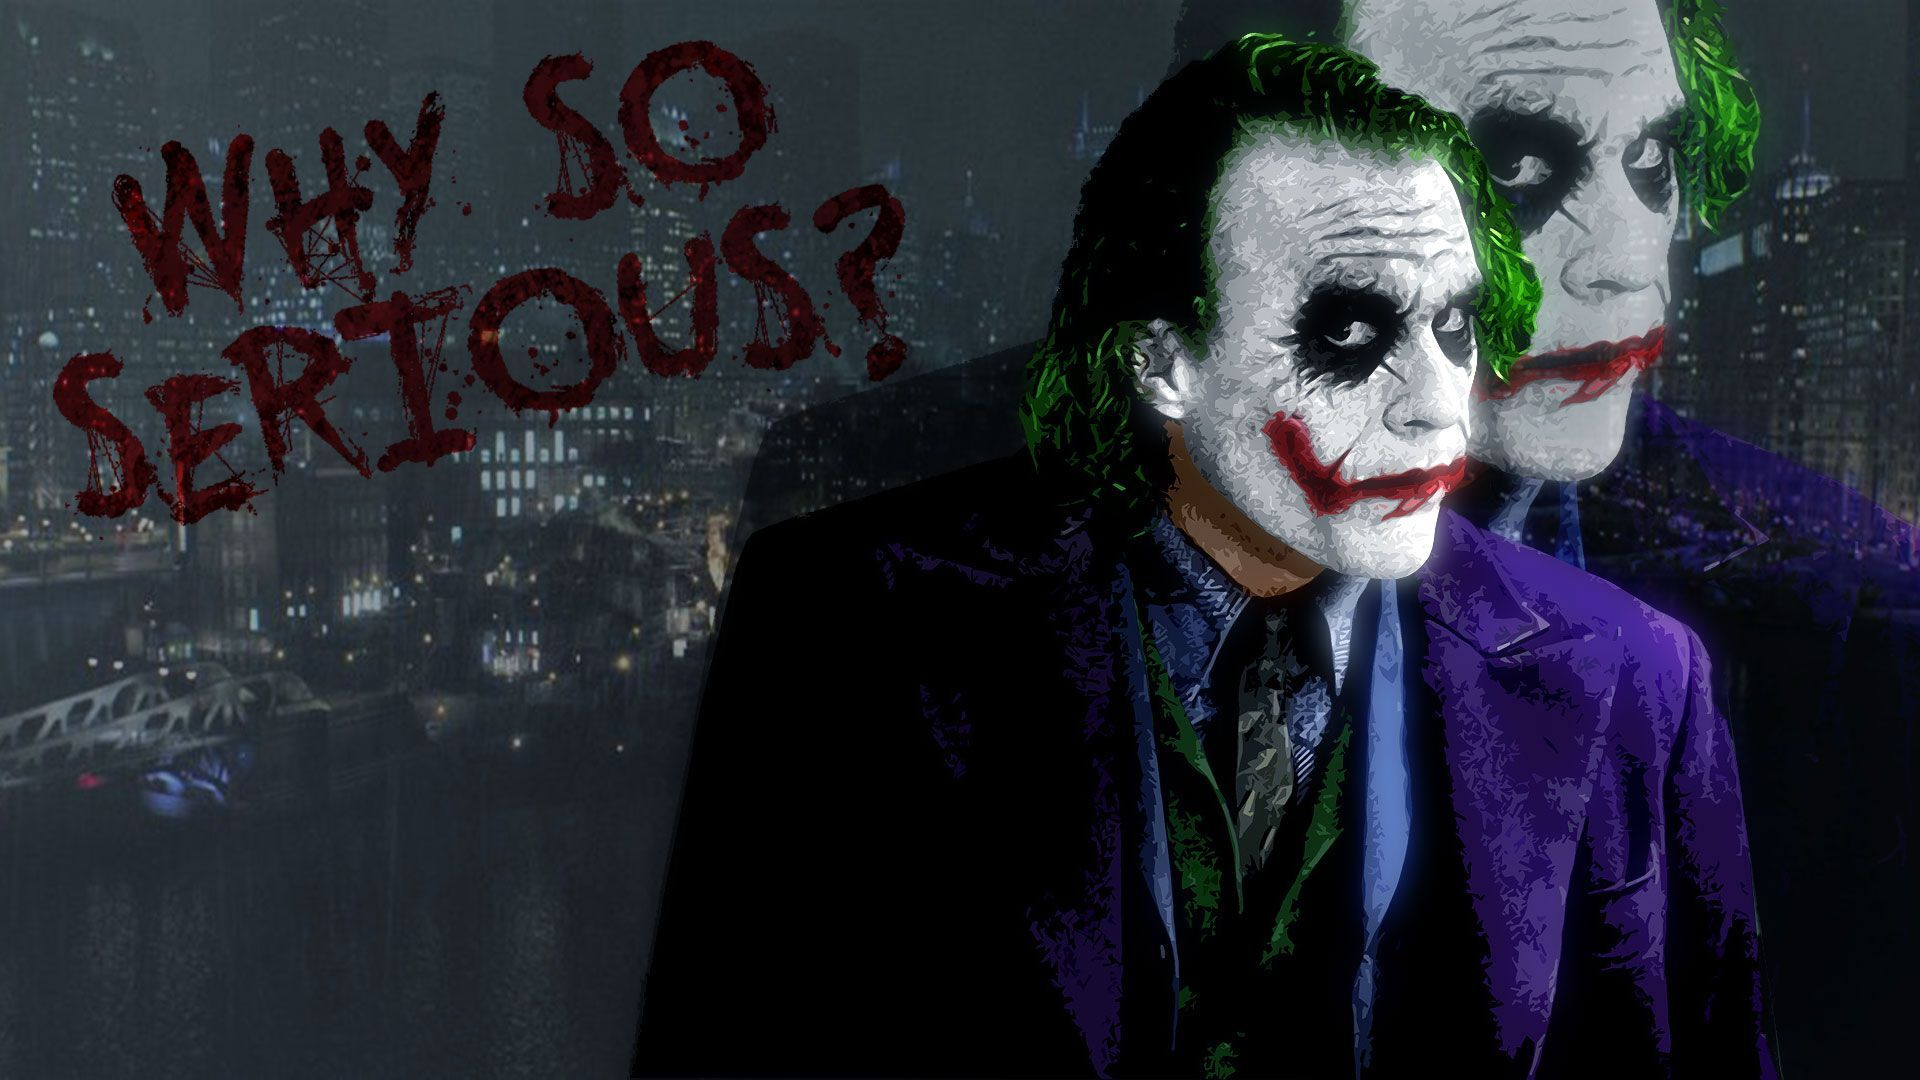 Wallpaper download joker - Download Free Batman Wallpapers For Your Mobile Phone Most